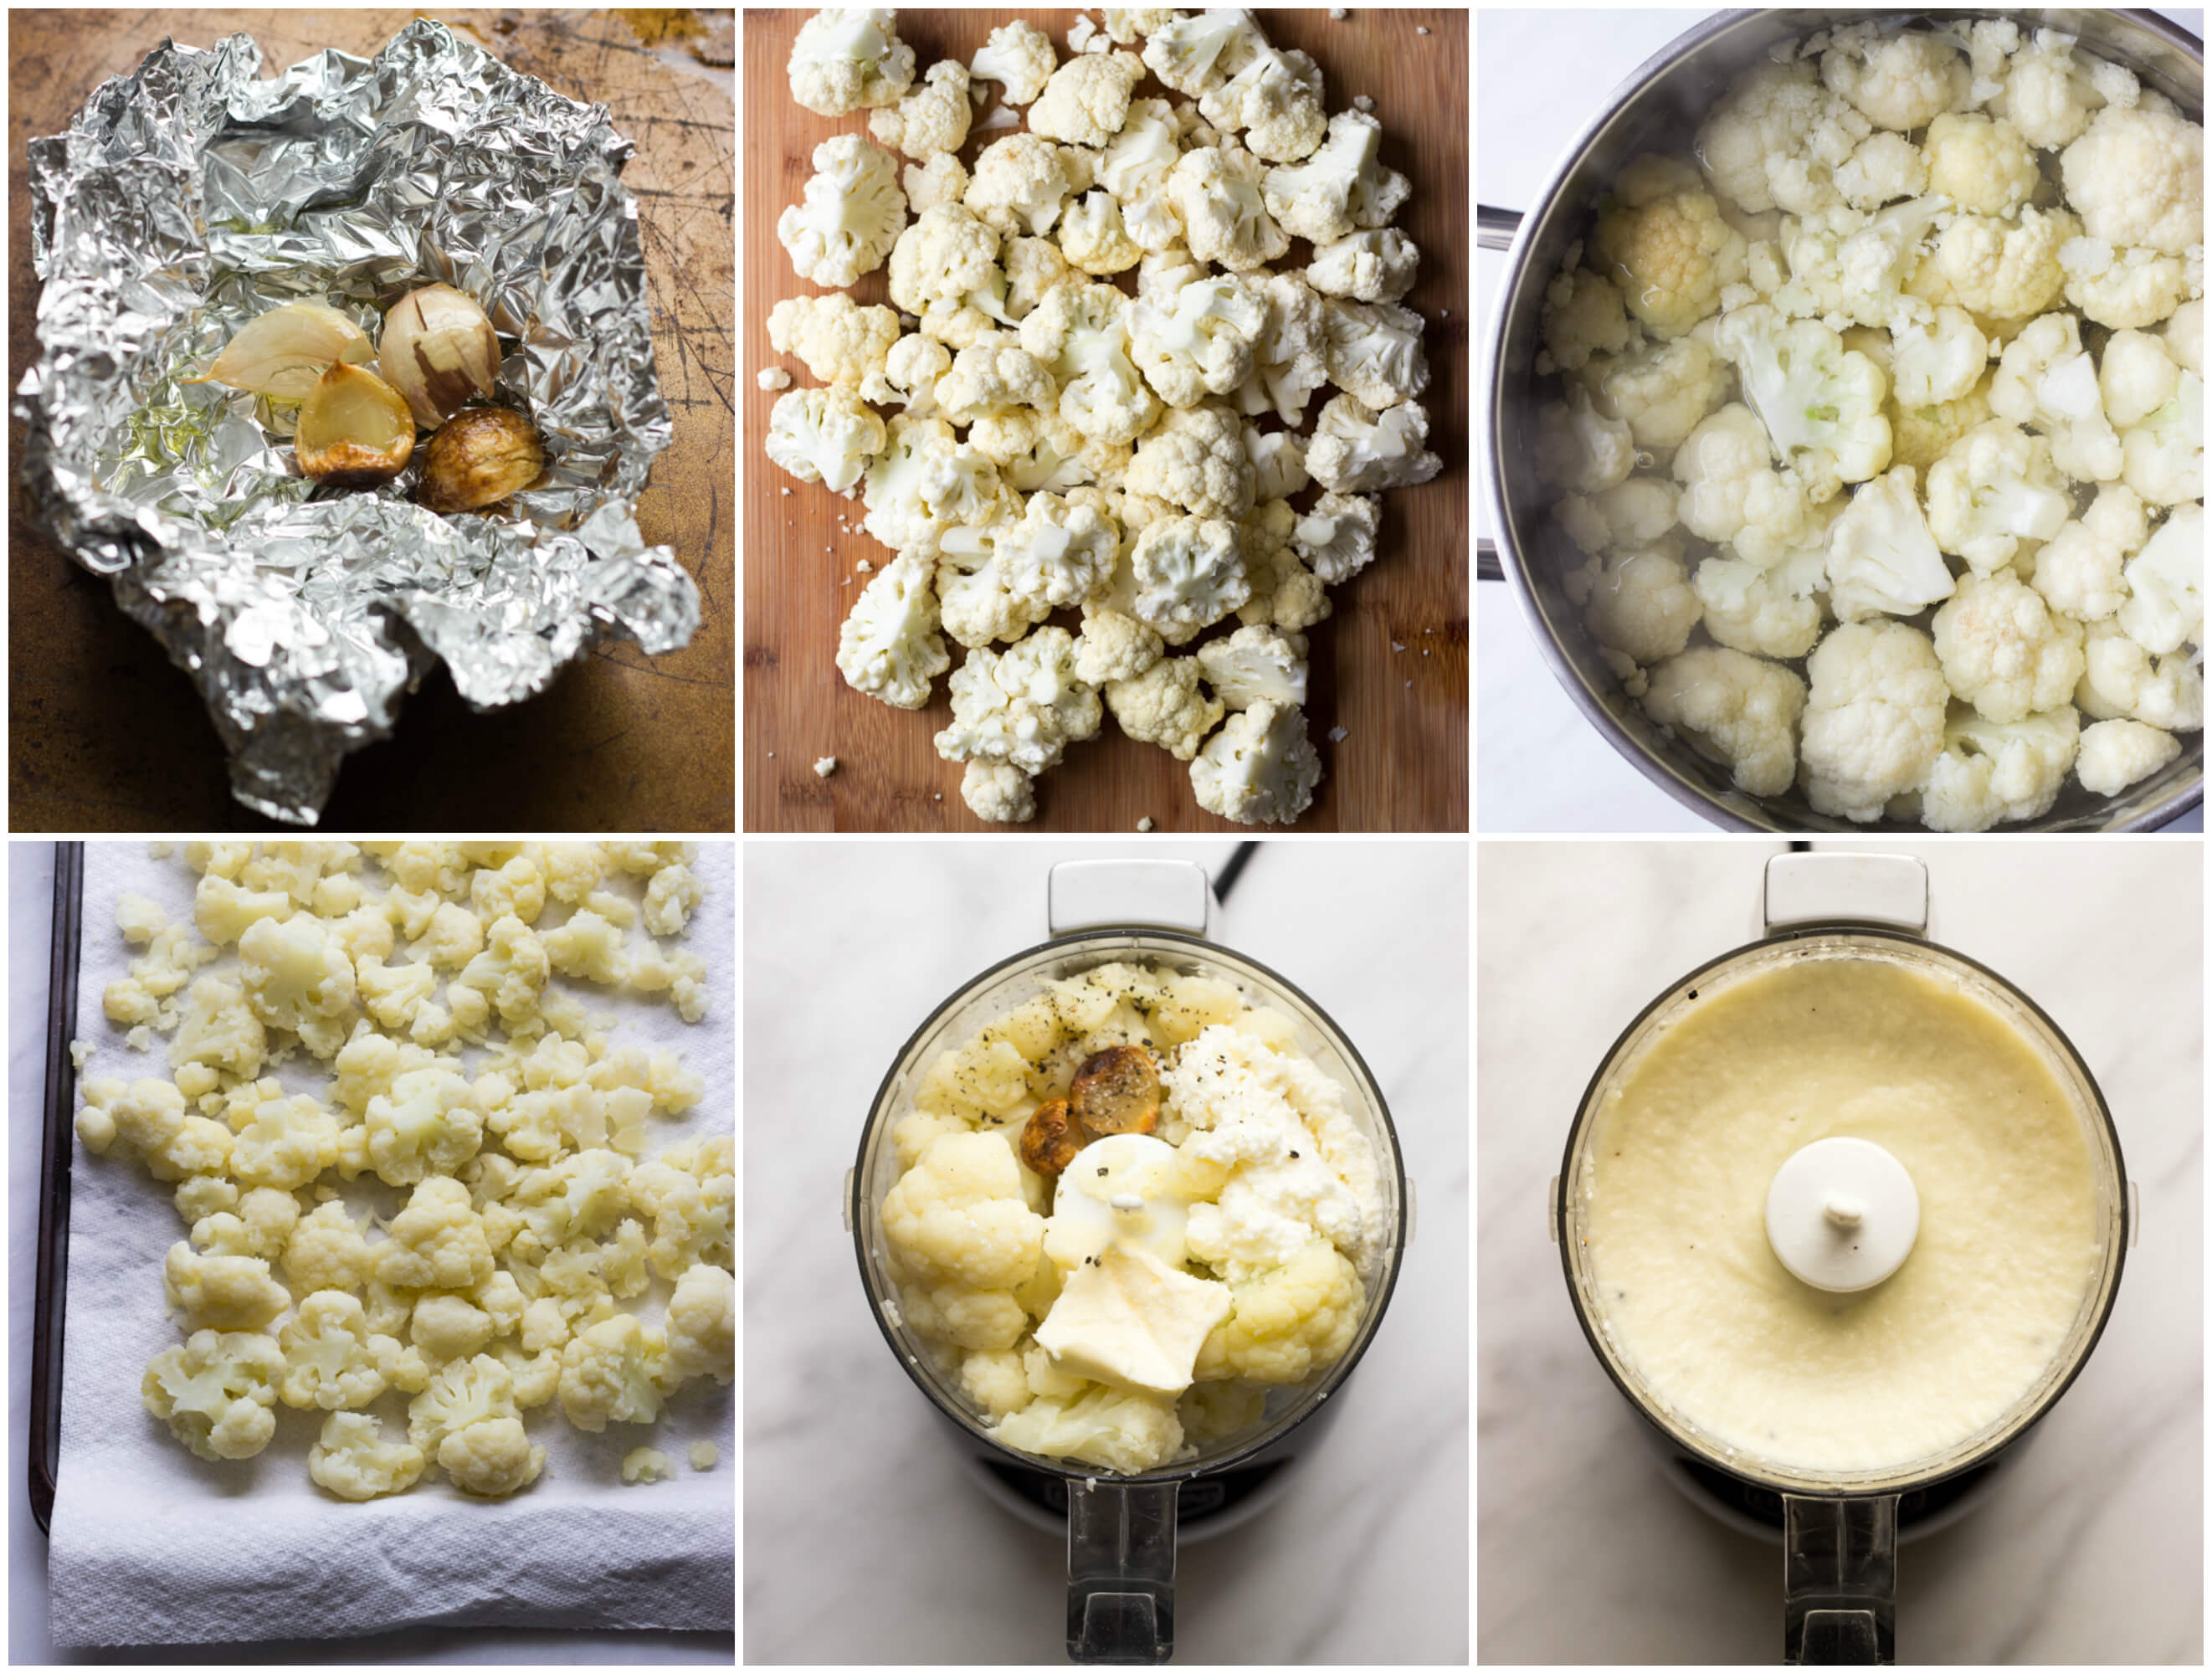 Cauliflower Mash with Ricotta and Roasted Garlic - tastes just like mashed potatoes but with fraction of the carbs! | littlebroken.com @littlebroken